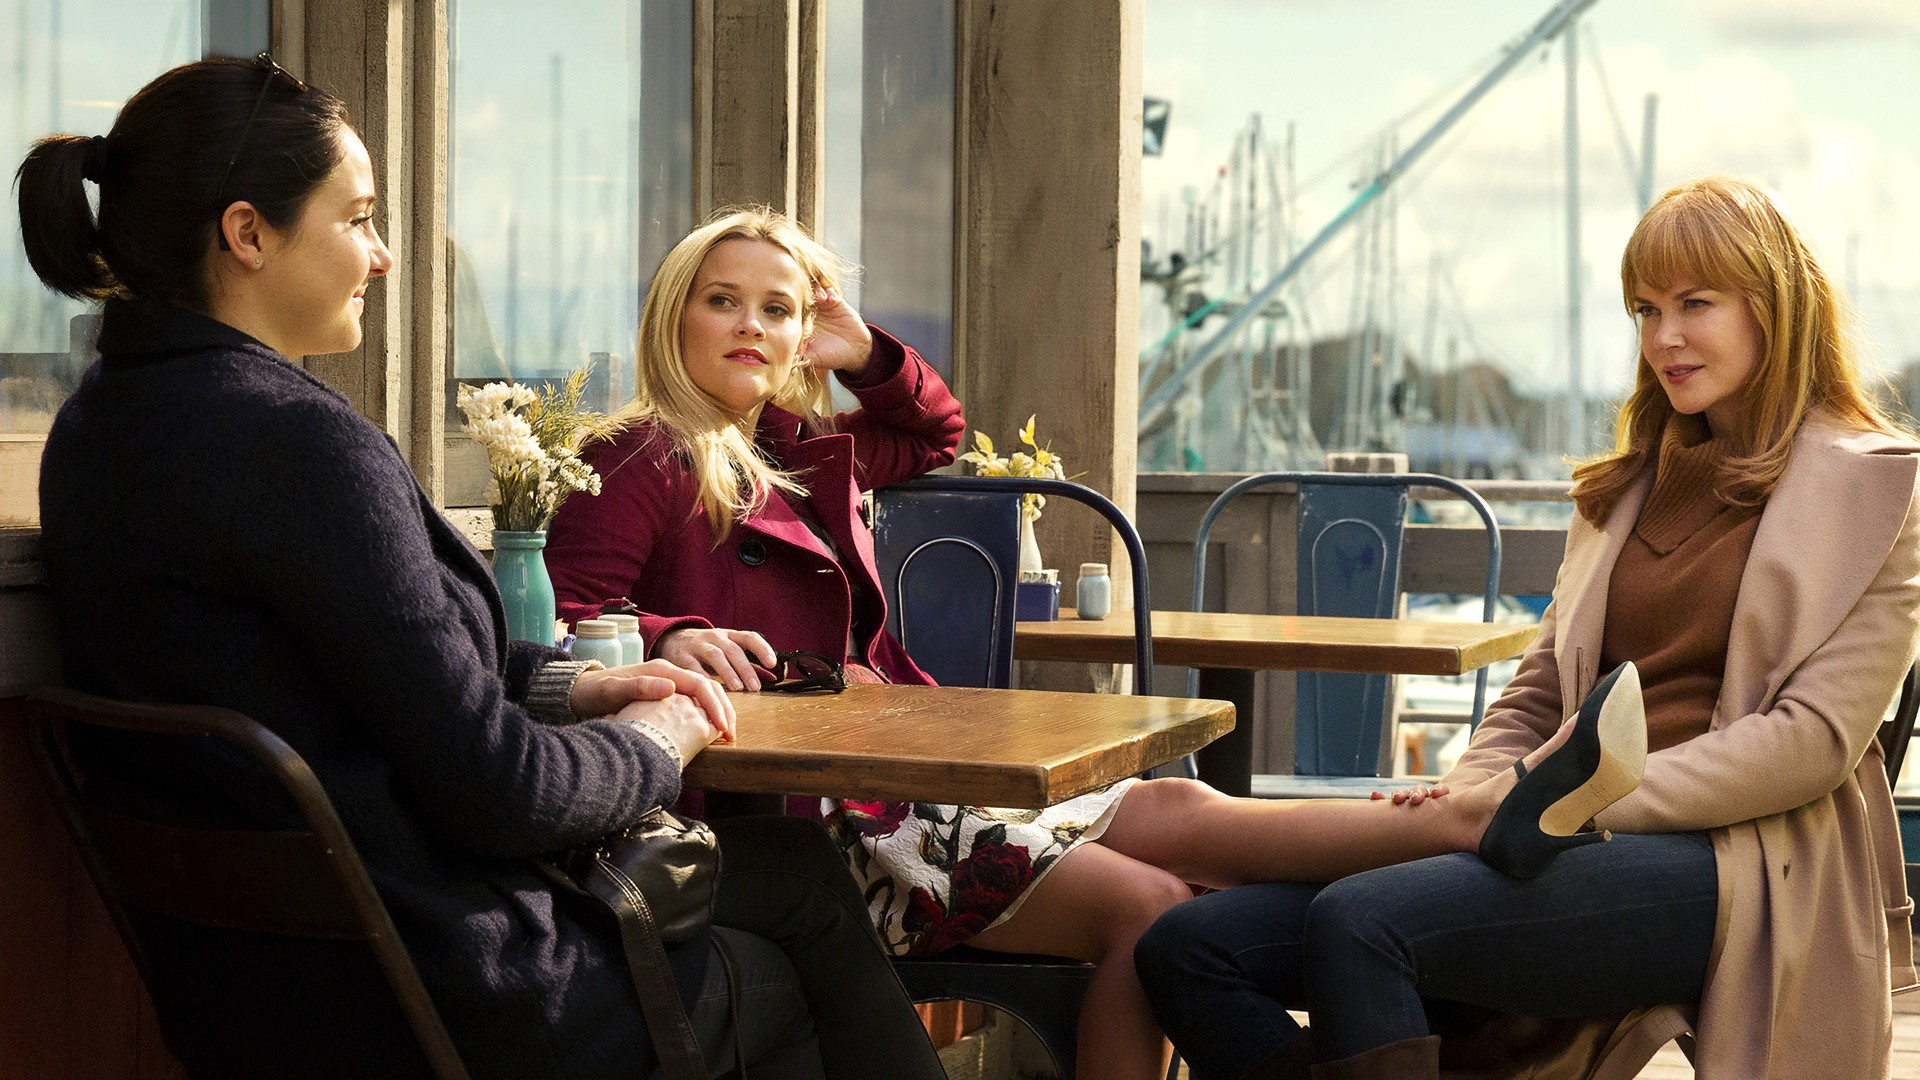 Reese Witherspoon, Nicole Kidman, and Shailene Woodley in 'Big Little Lies.'